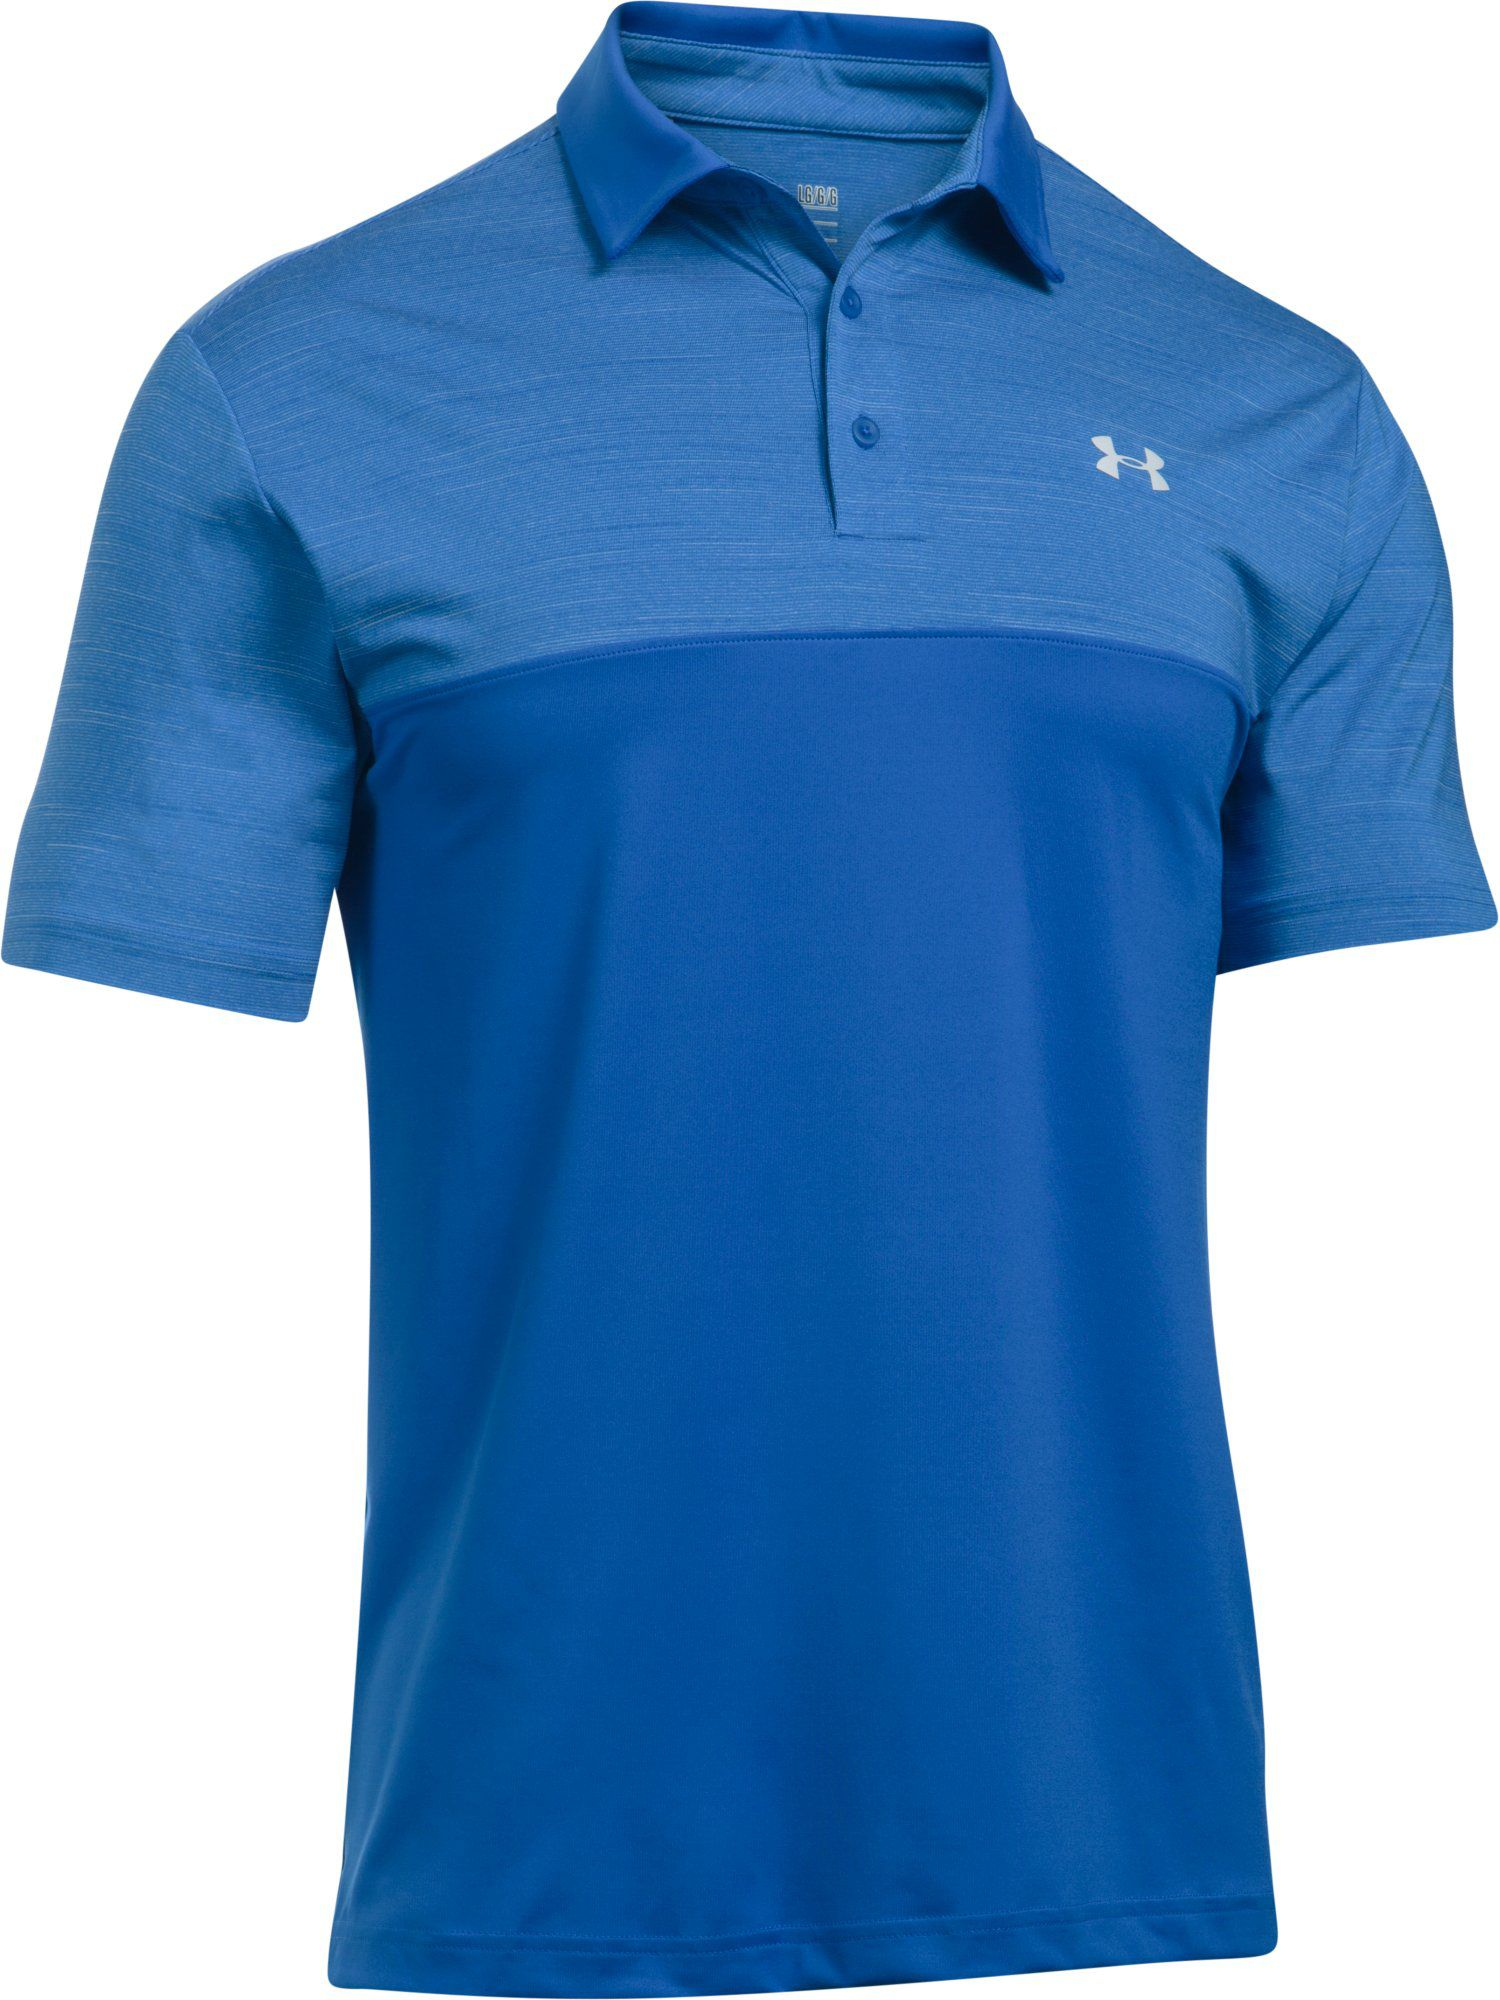 Men's Under Armour Playoff Polo Blocked, Blue